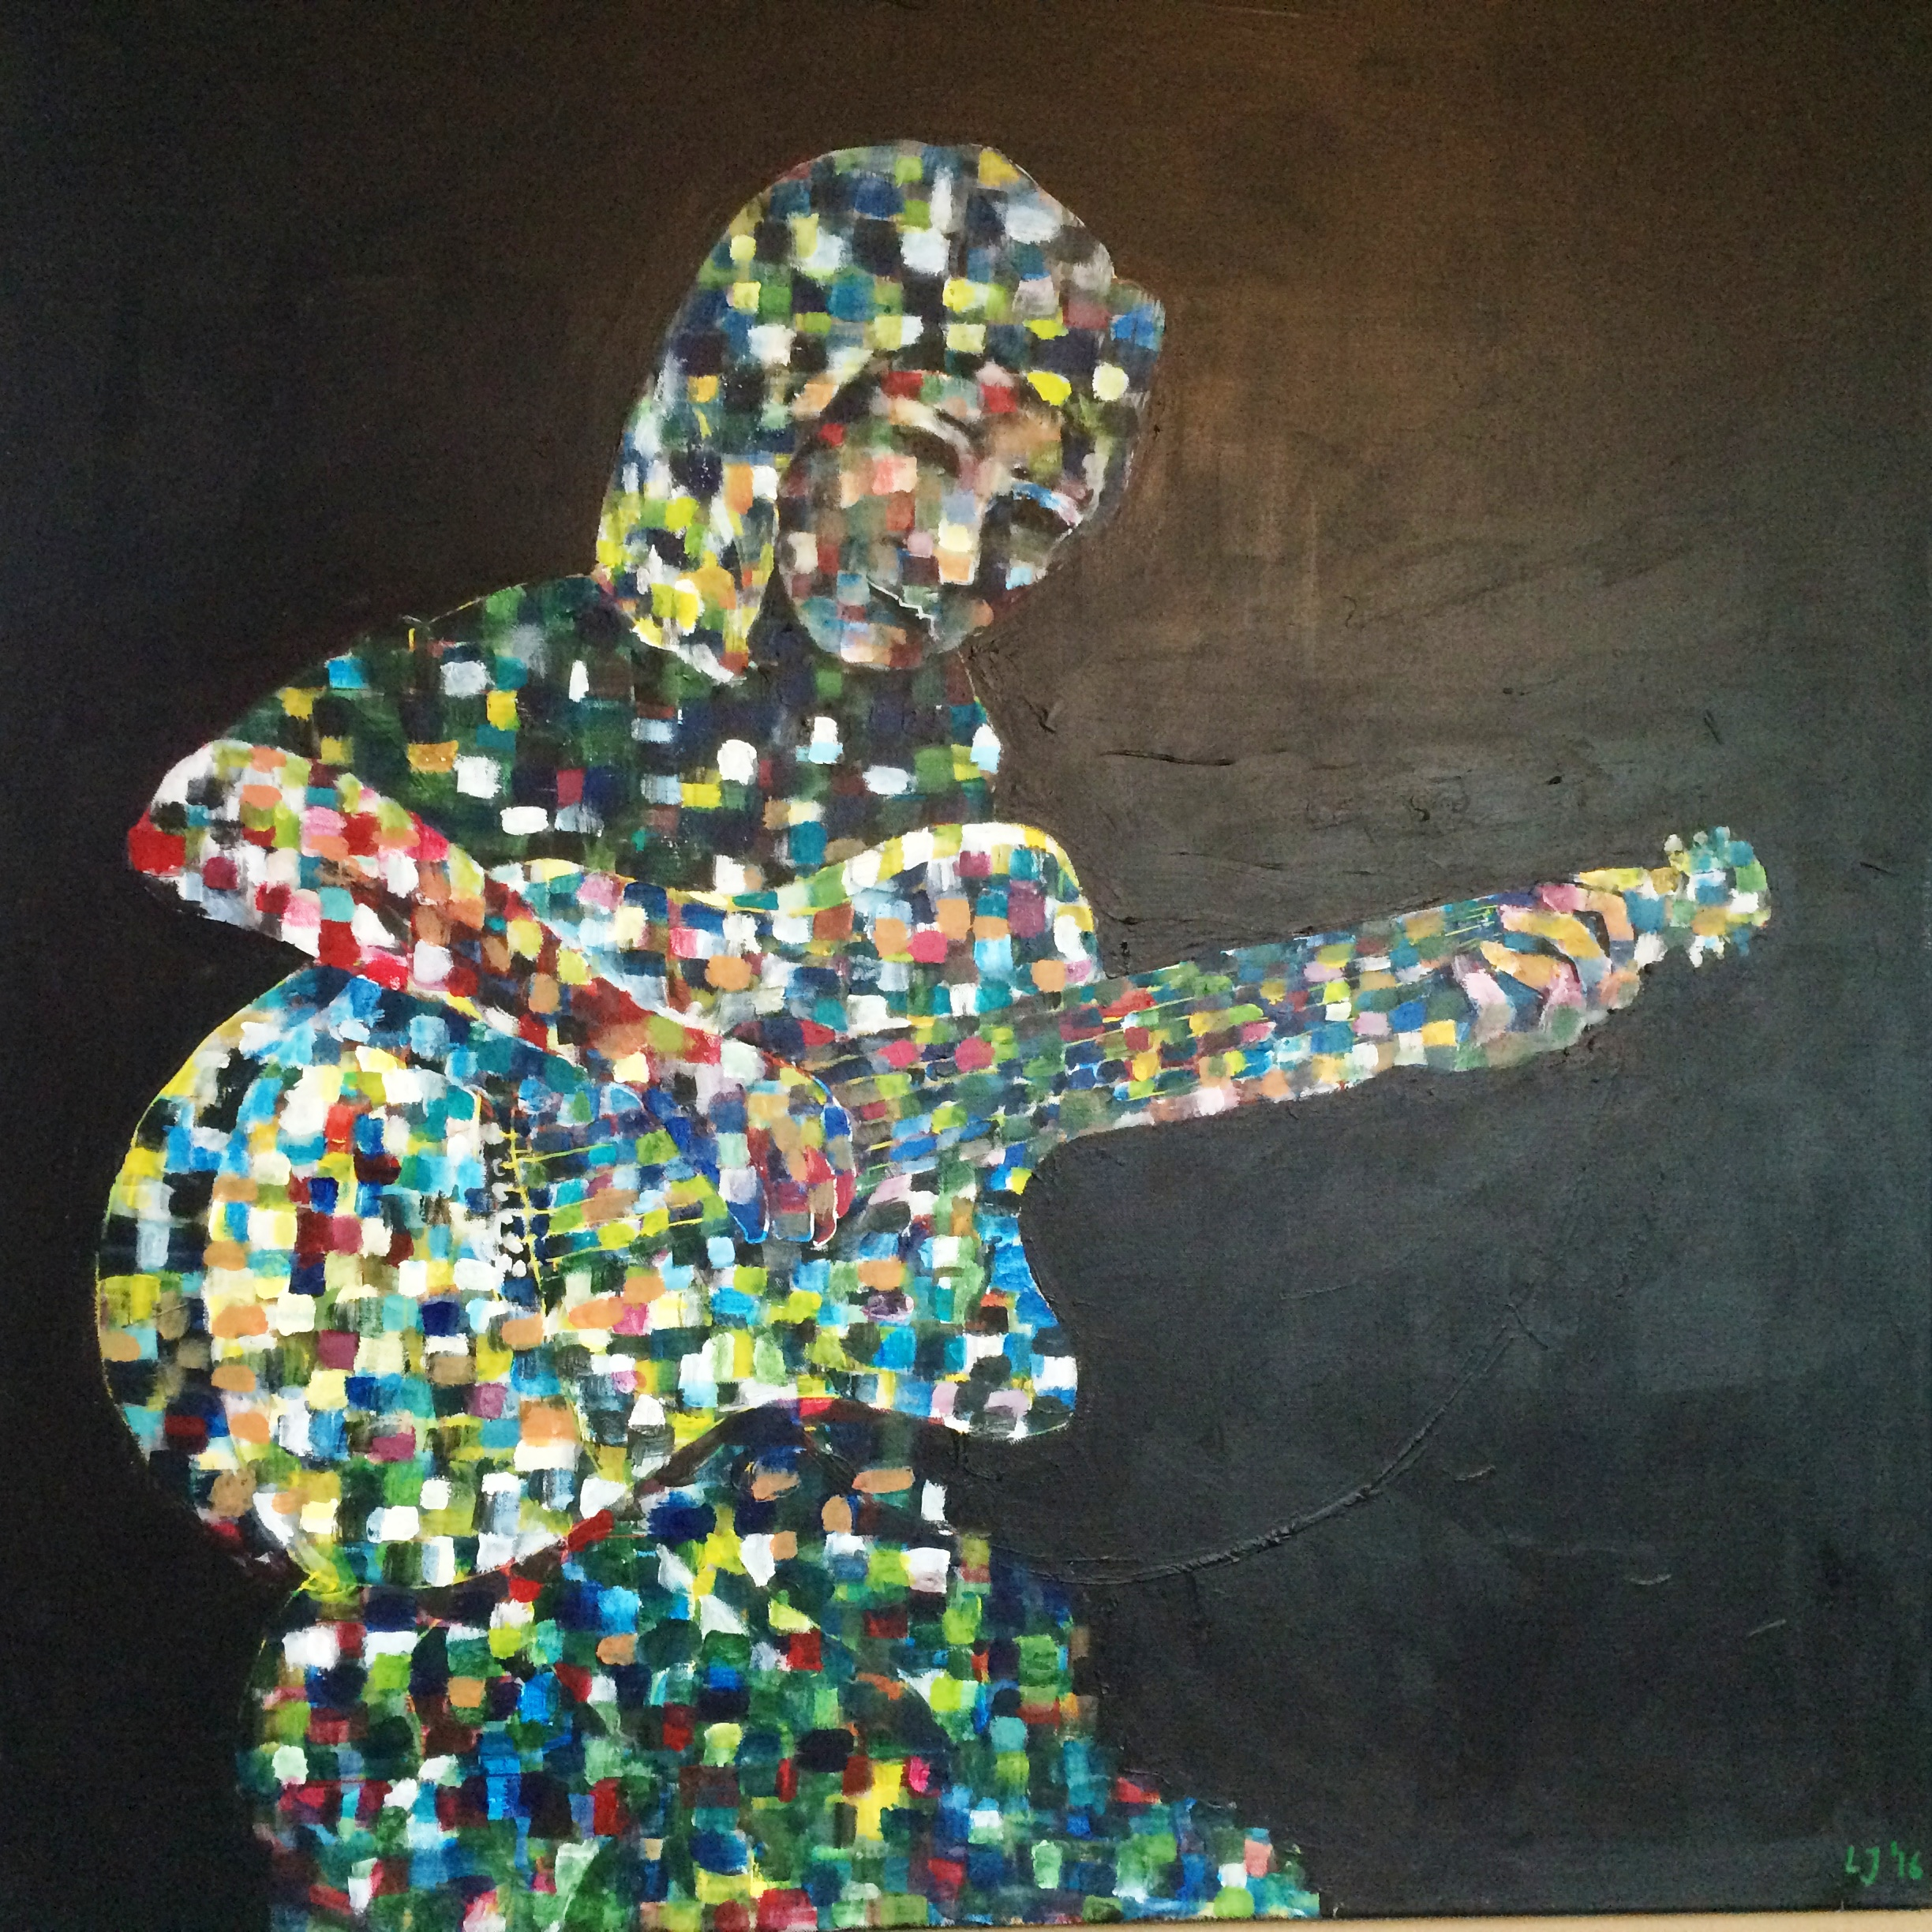 Mosaic 6_Sound of life_100 x 80 cm